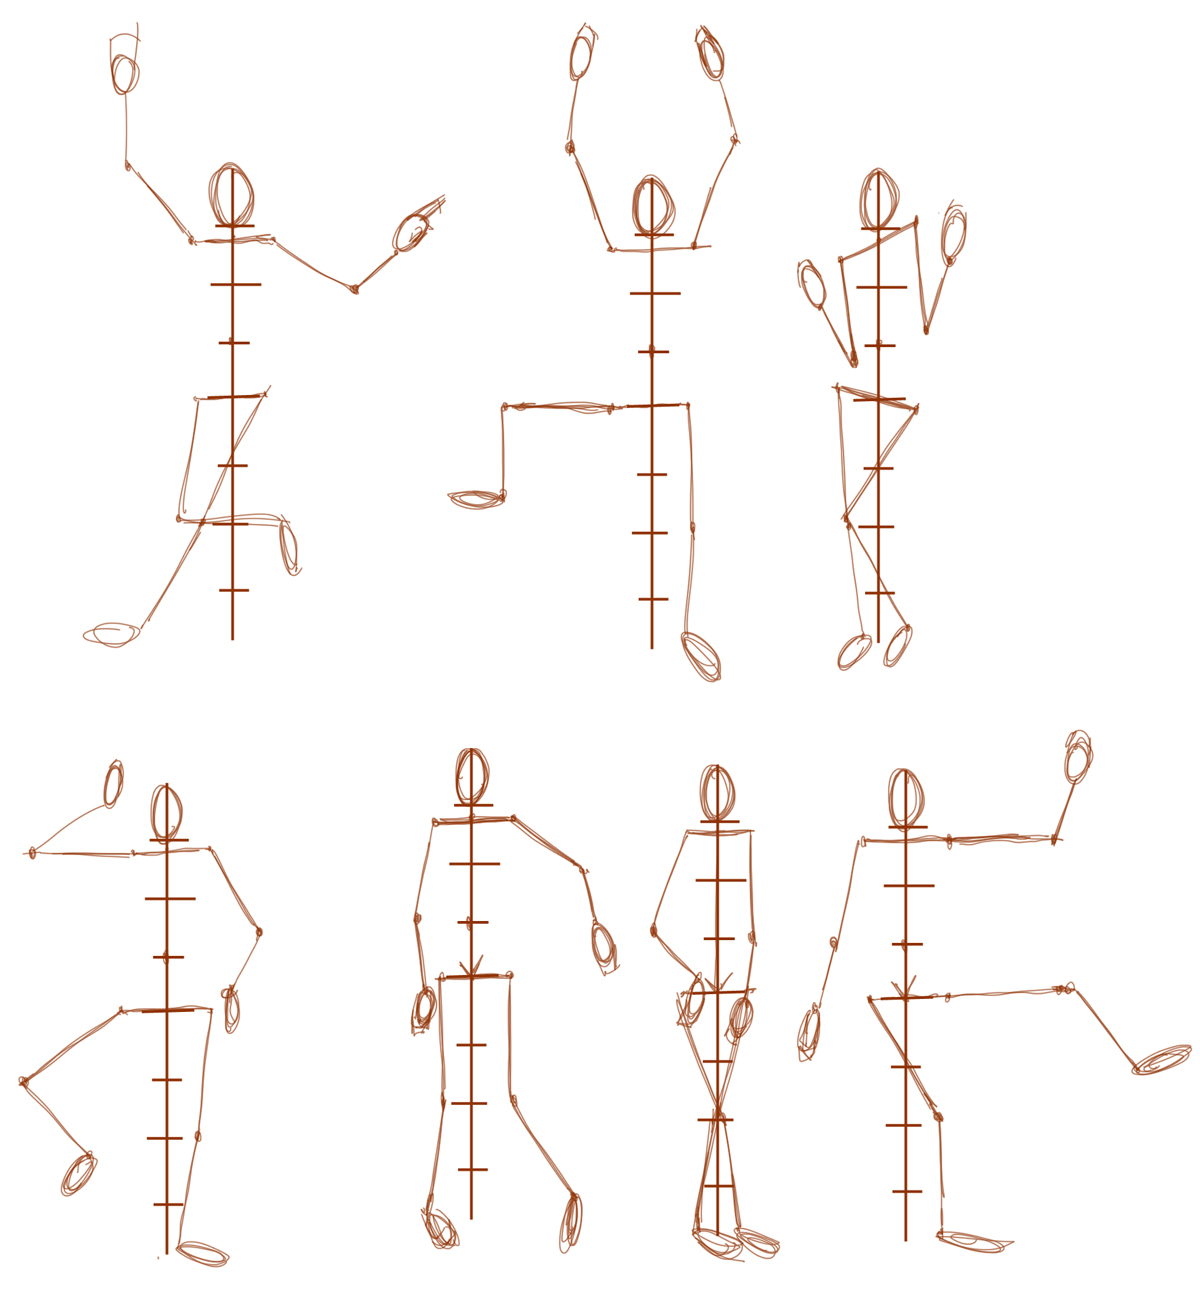 Learn How To Draw Human Figures In Correct Proportions By